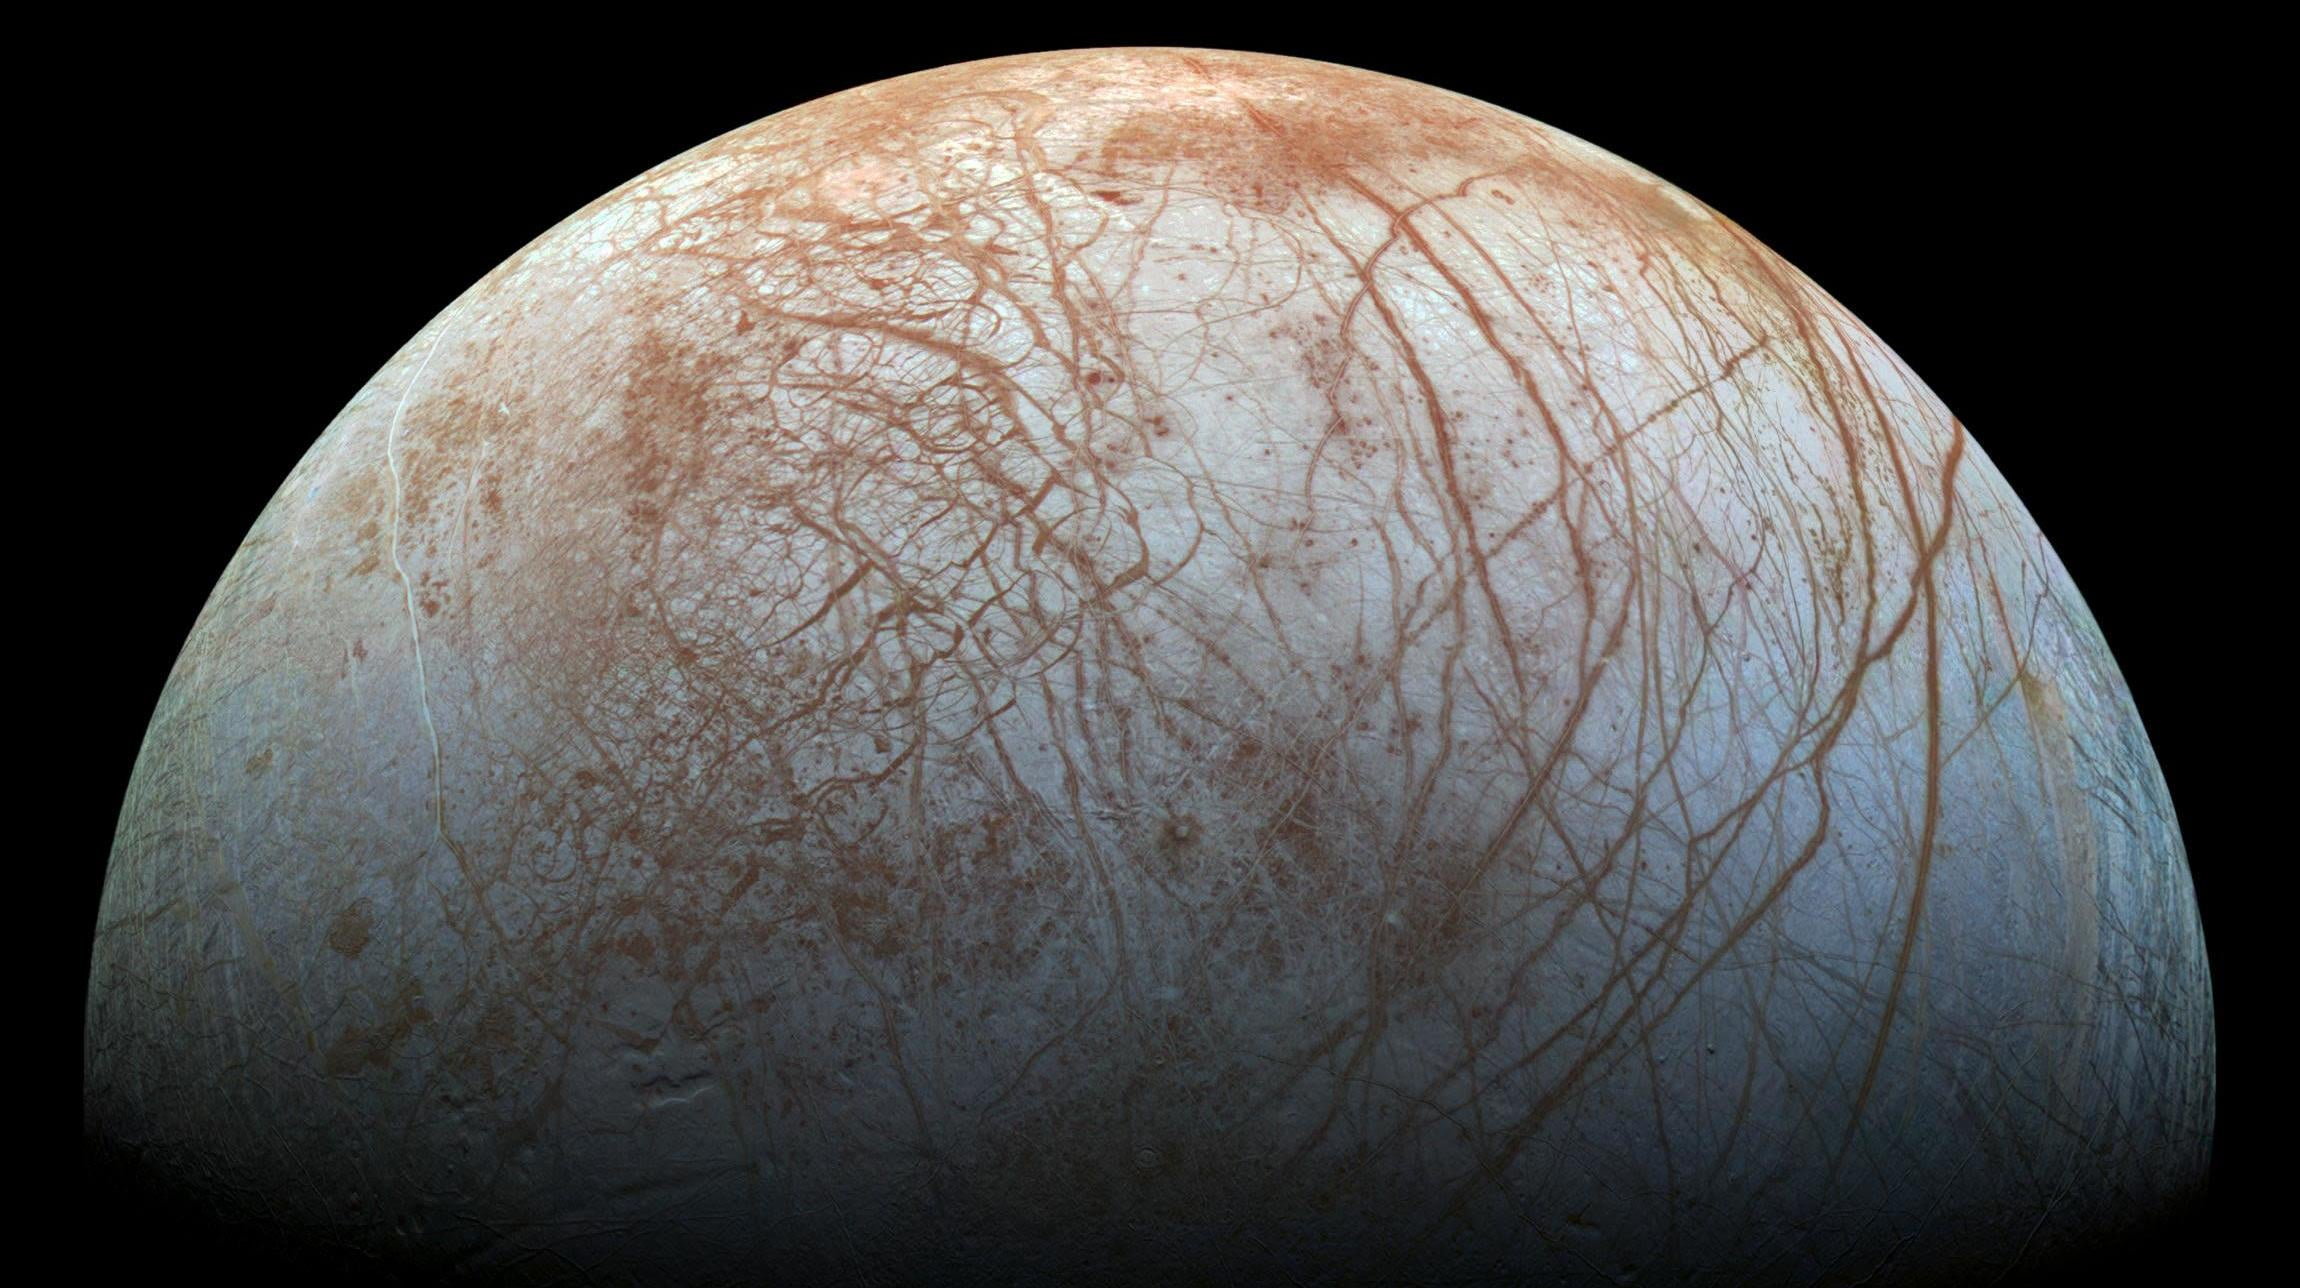 Evidence Mounts For Gigantic Water Plumes On Jupiter's Moon Europa